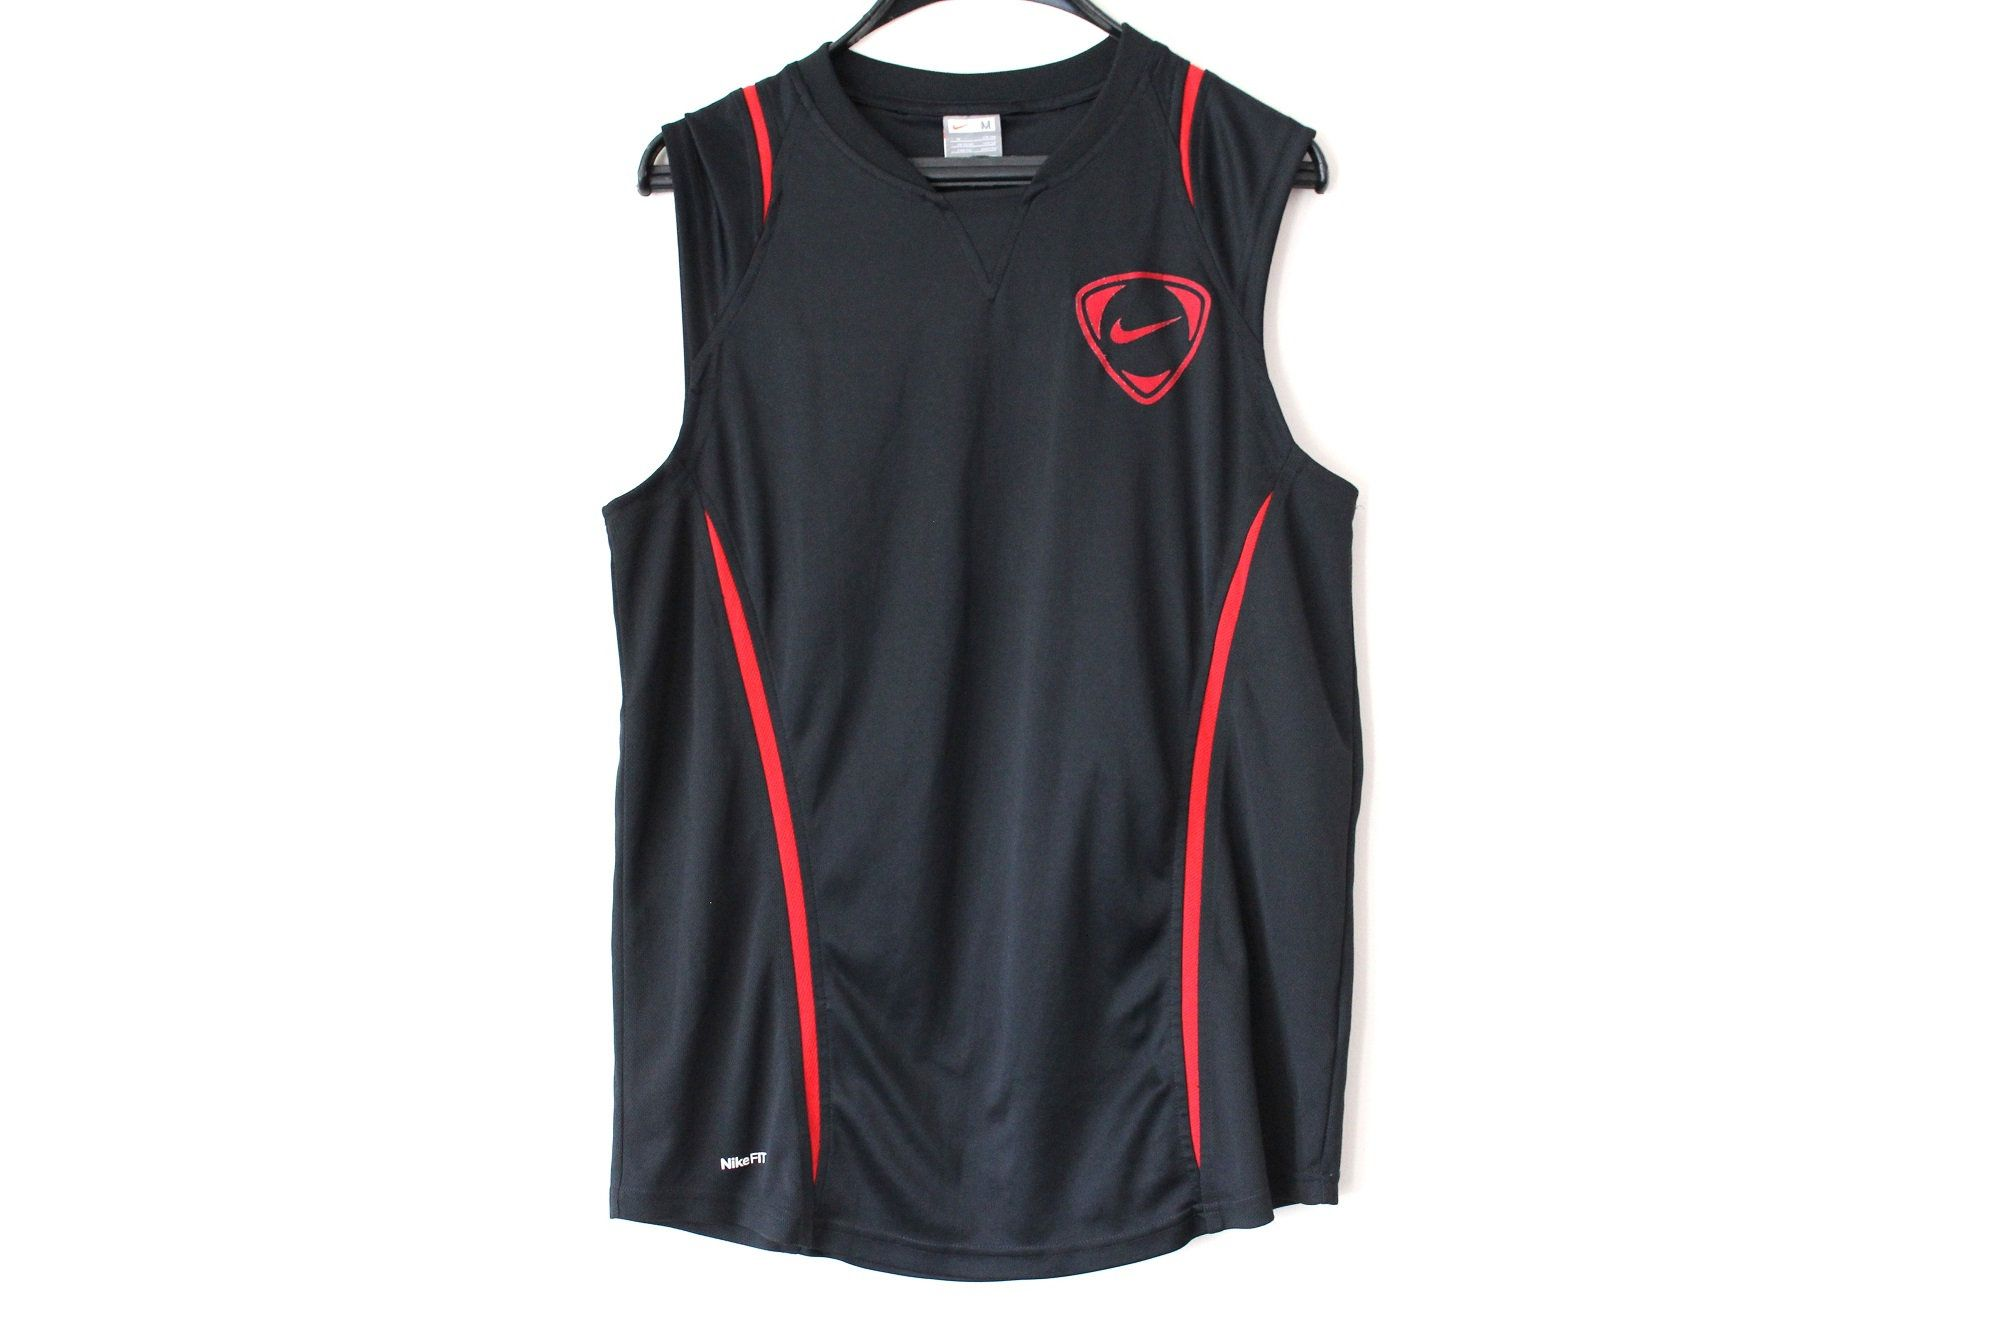 Nike Graphic T Shirt Men's Casual Clothing BlackRed